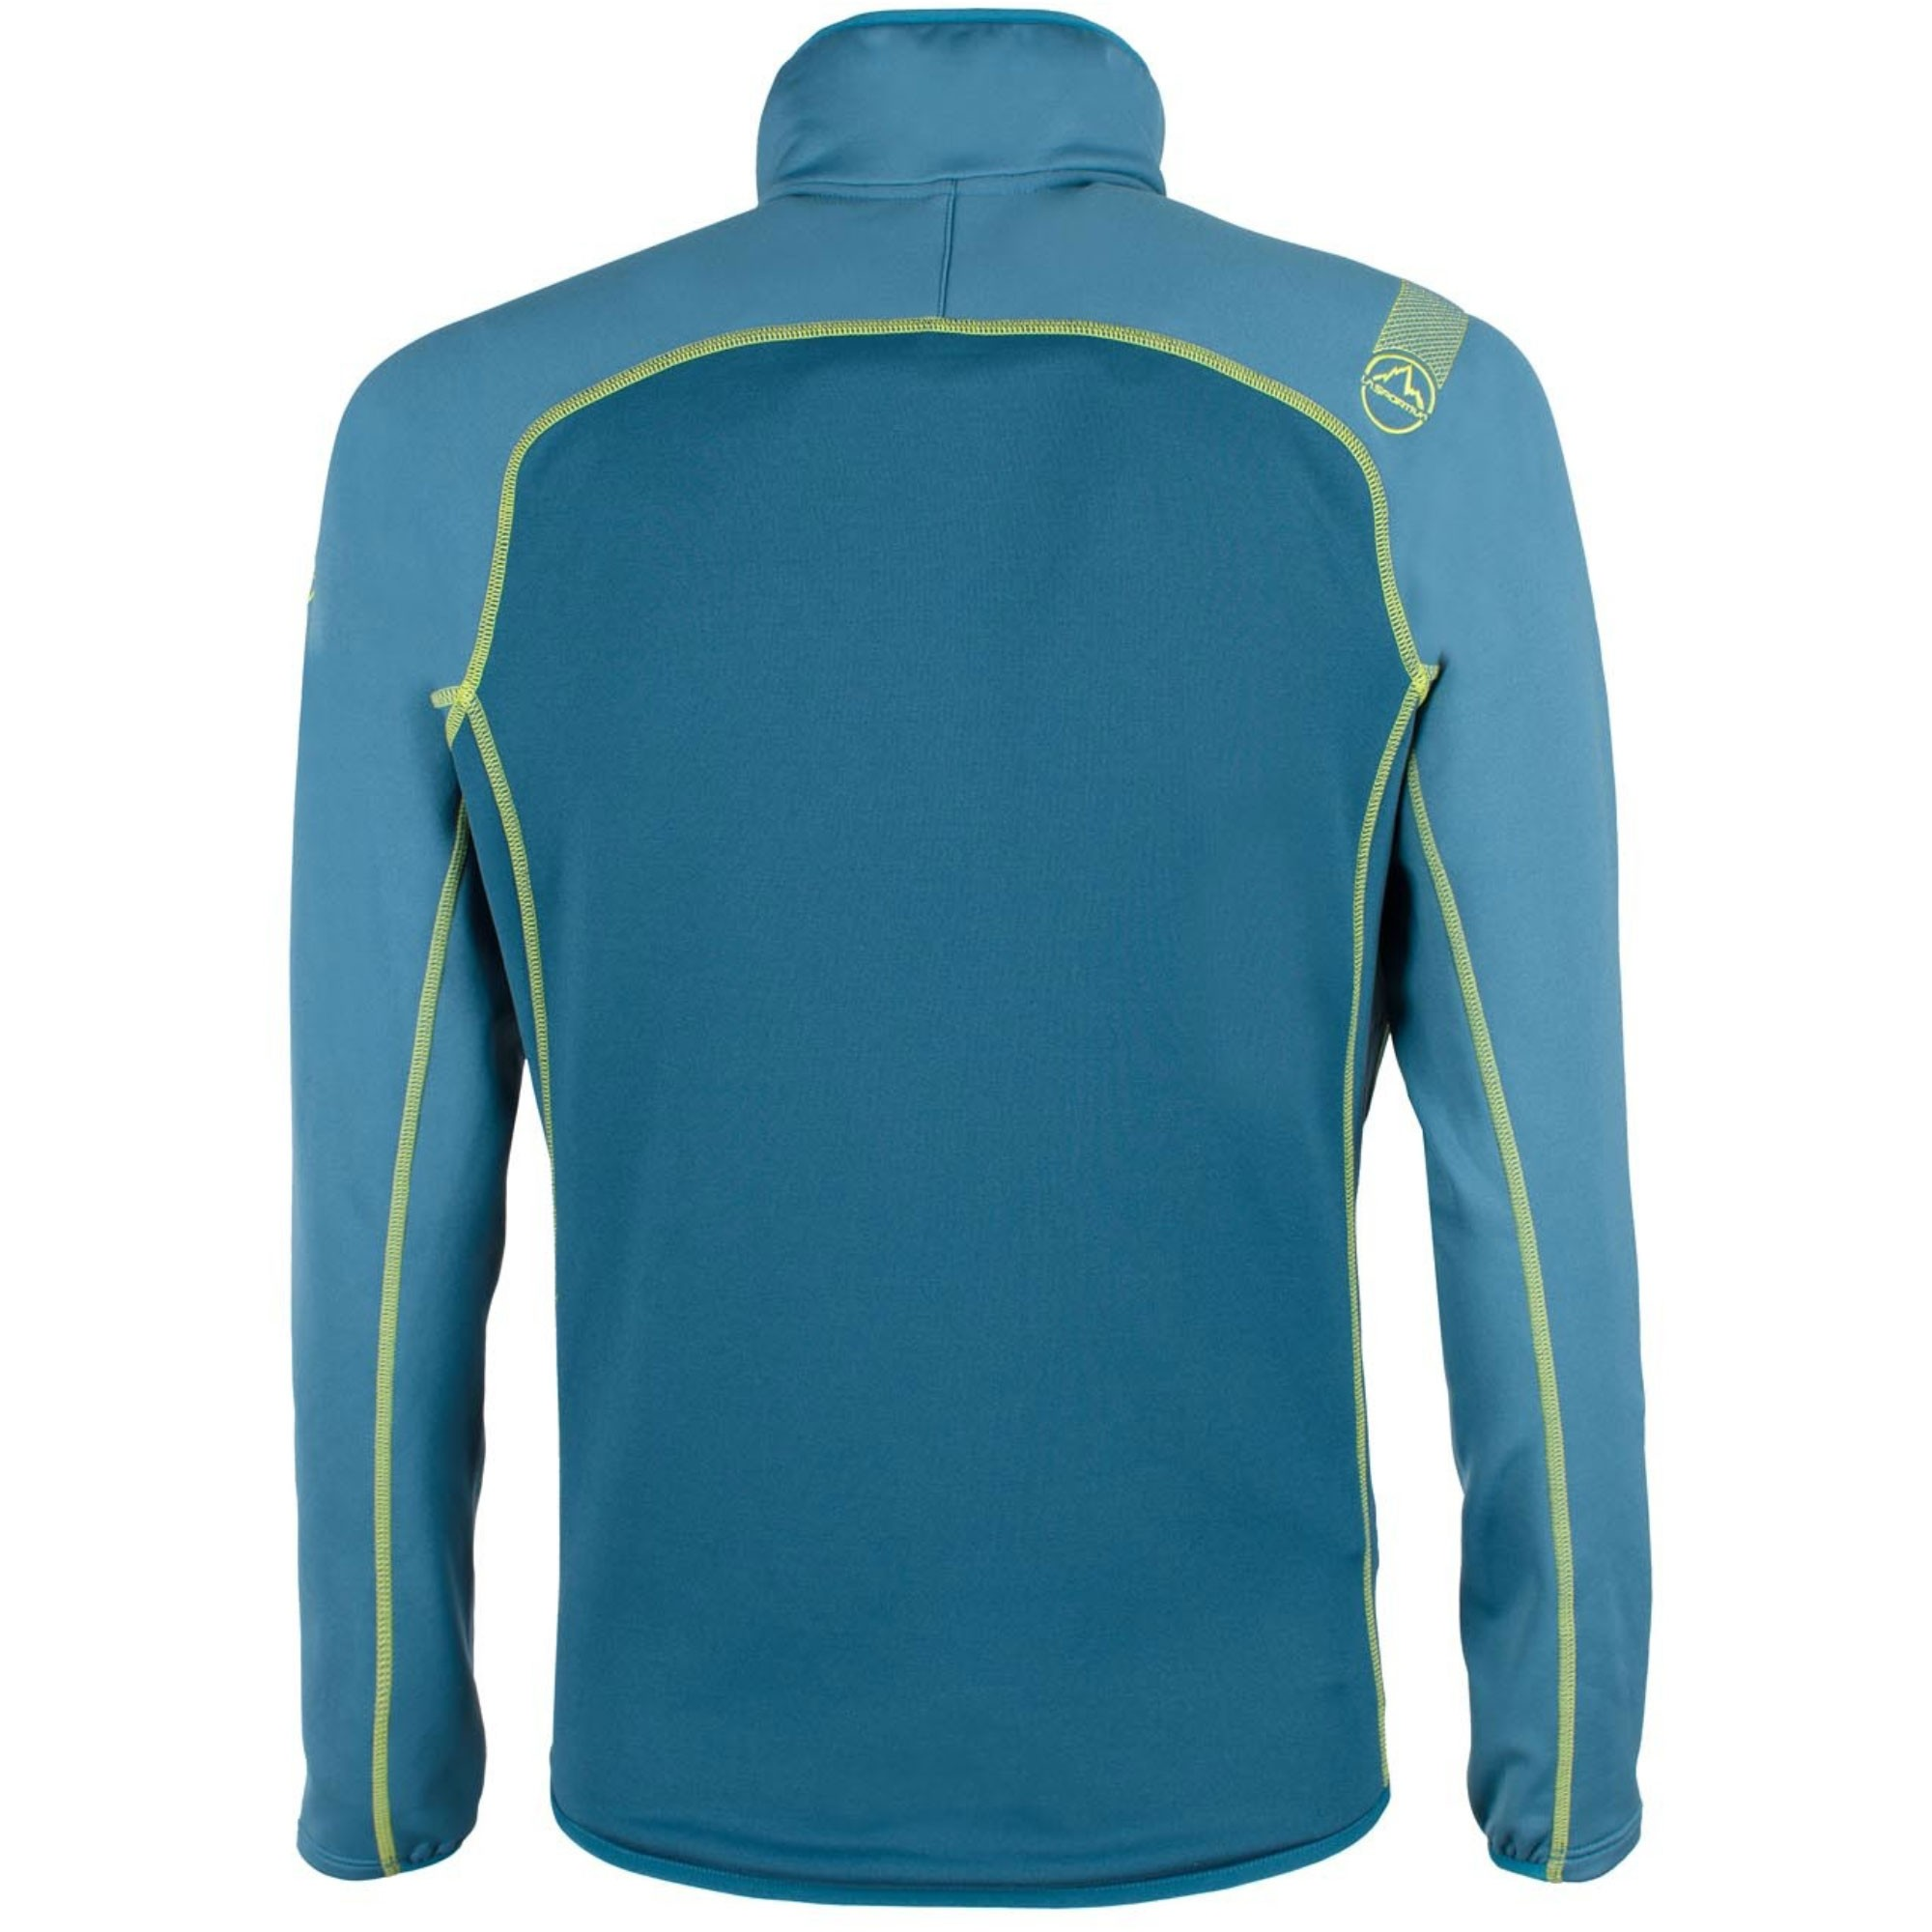 La-Sportiva-Orbit-Jacket-Ocean-Lake-B-W17